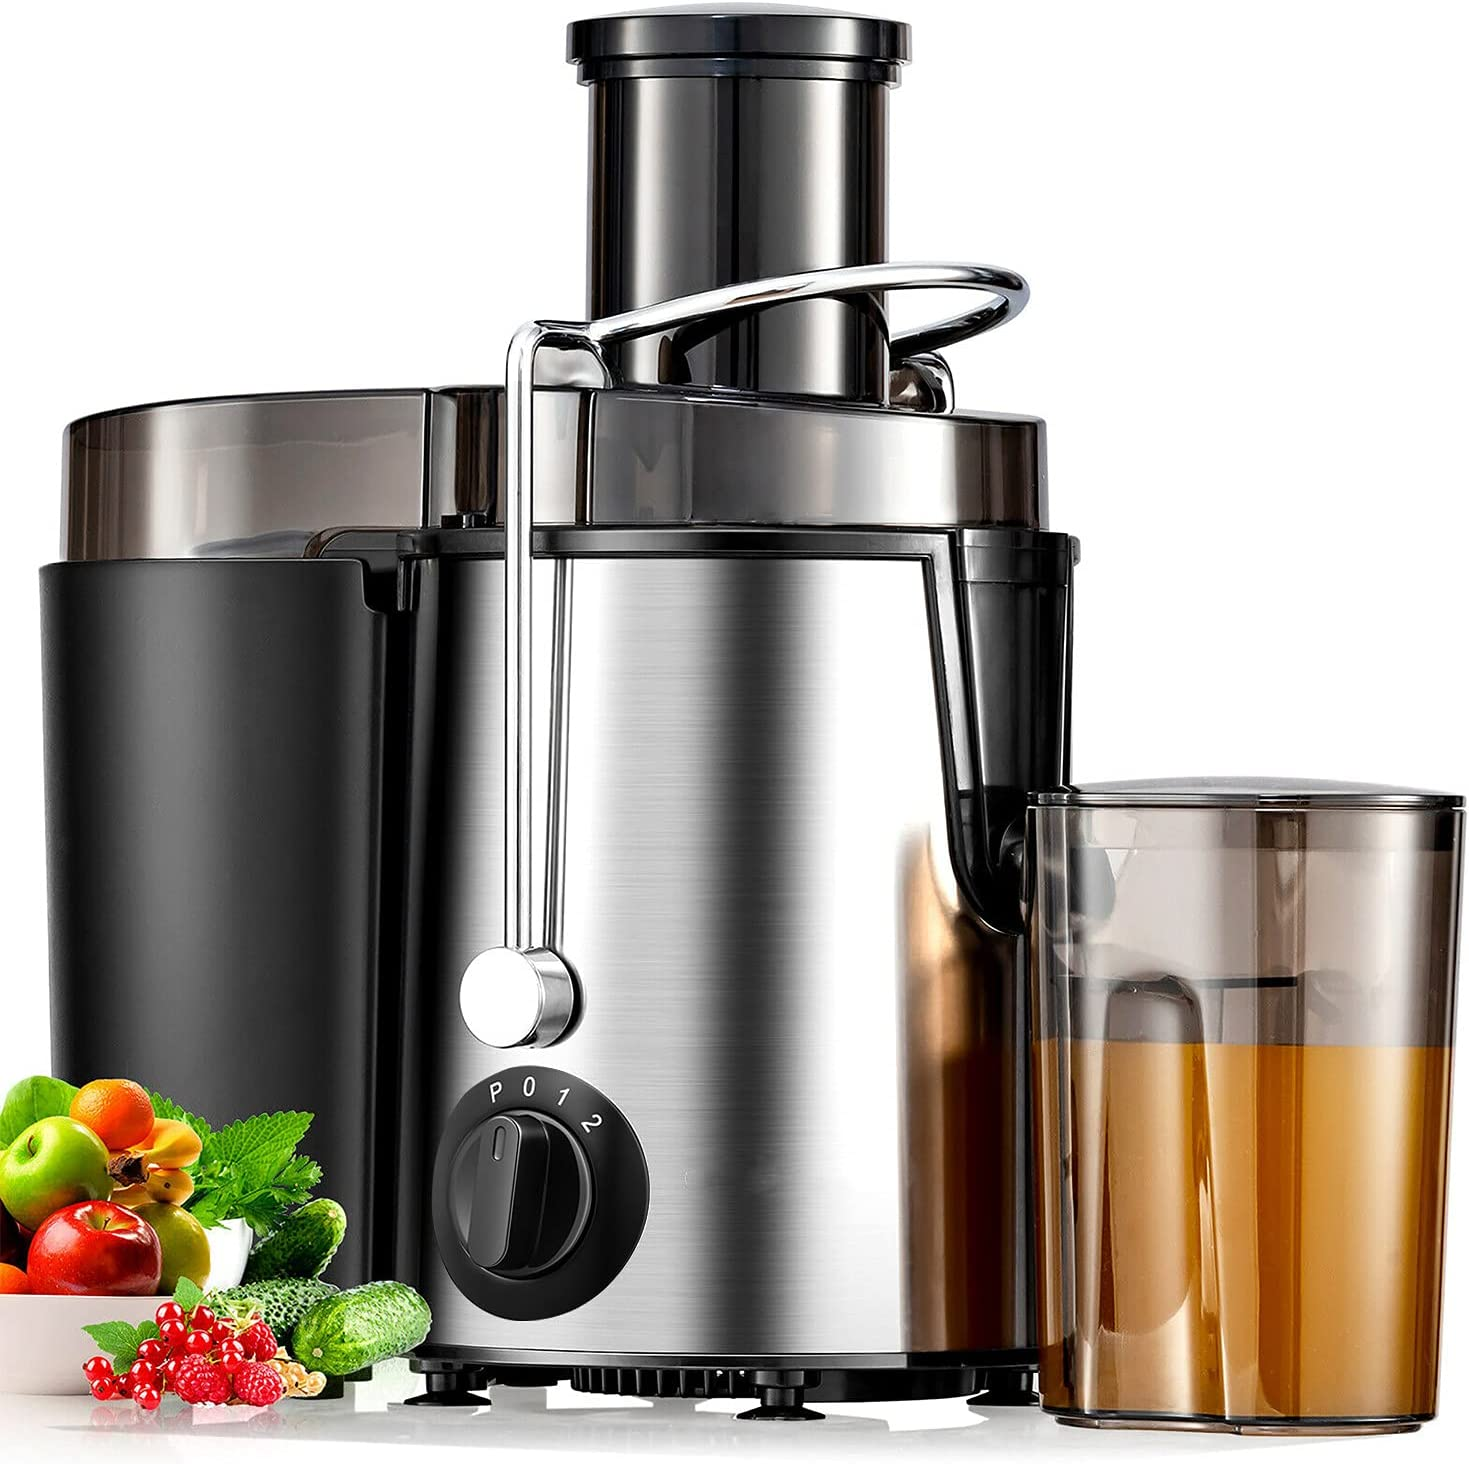 """Juicer Machine, 400W Juicer with Big Mouth Large 3""""Feed Chute for Whole Fruit and Vegetables Easy to Clean, Stainless Steel Centrifugal Juicer, BPA Free, Non-slip Feet, Silver"""